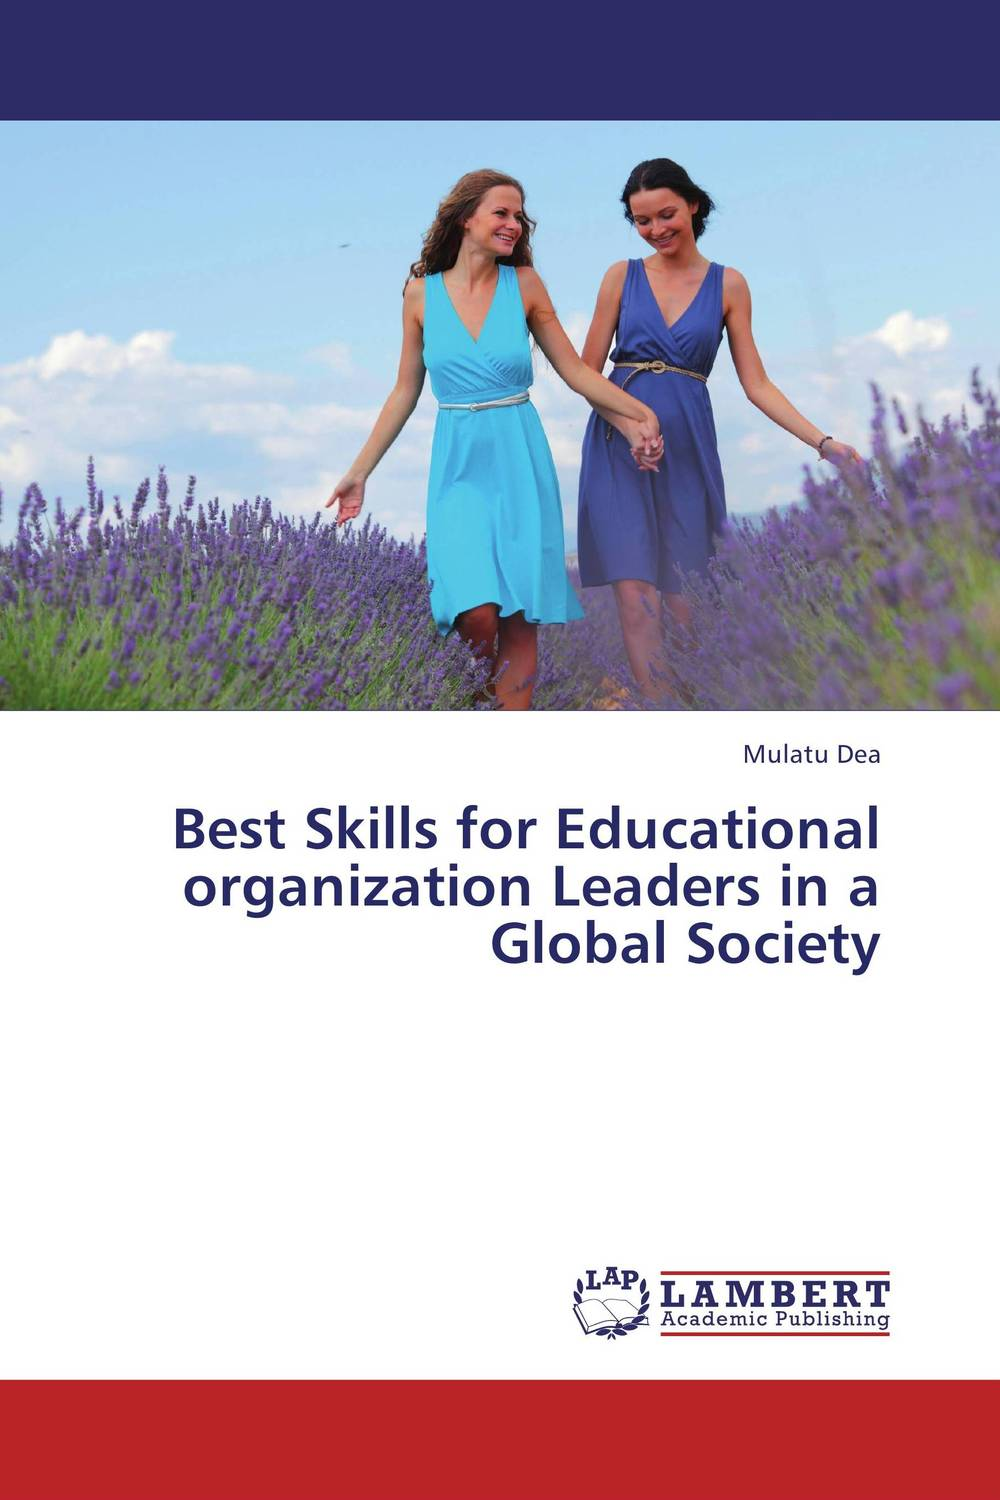 Best Skills for Educational organization Leaders in a Global Society david sibbet visual leaders new tools for visioning management and organization change